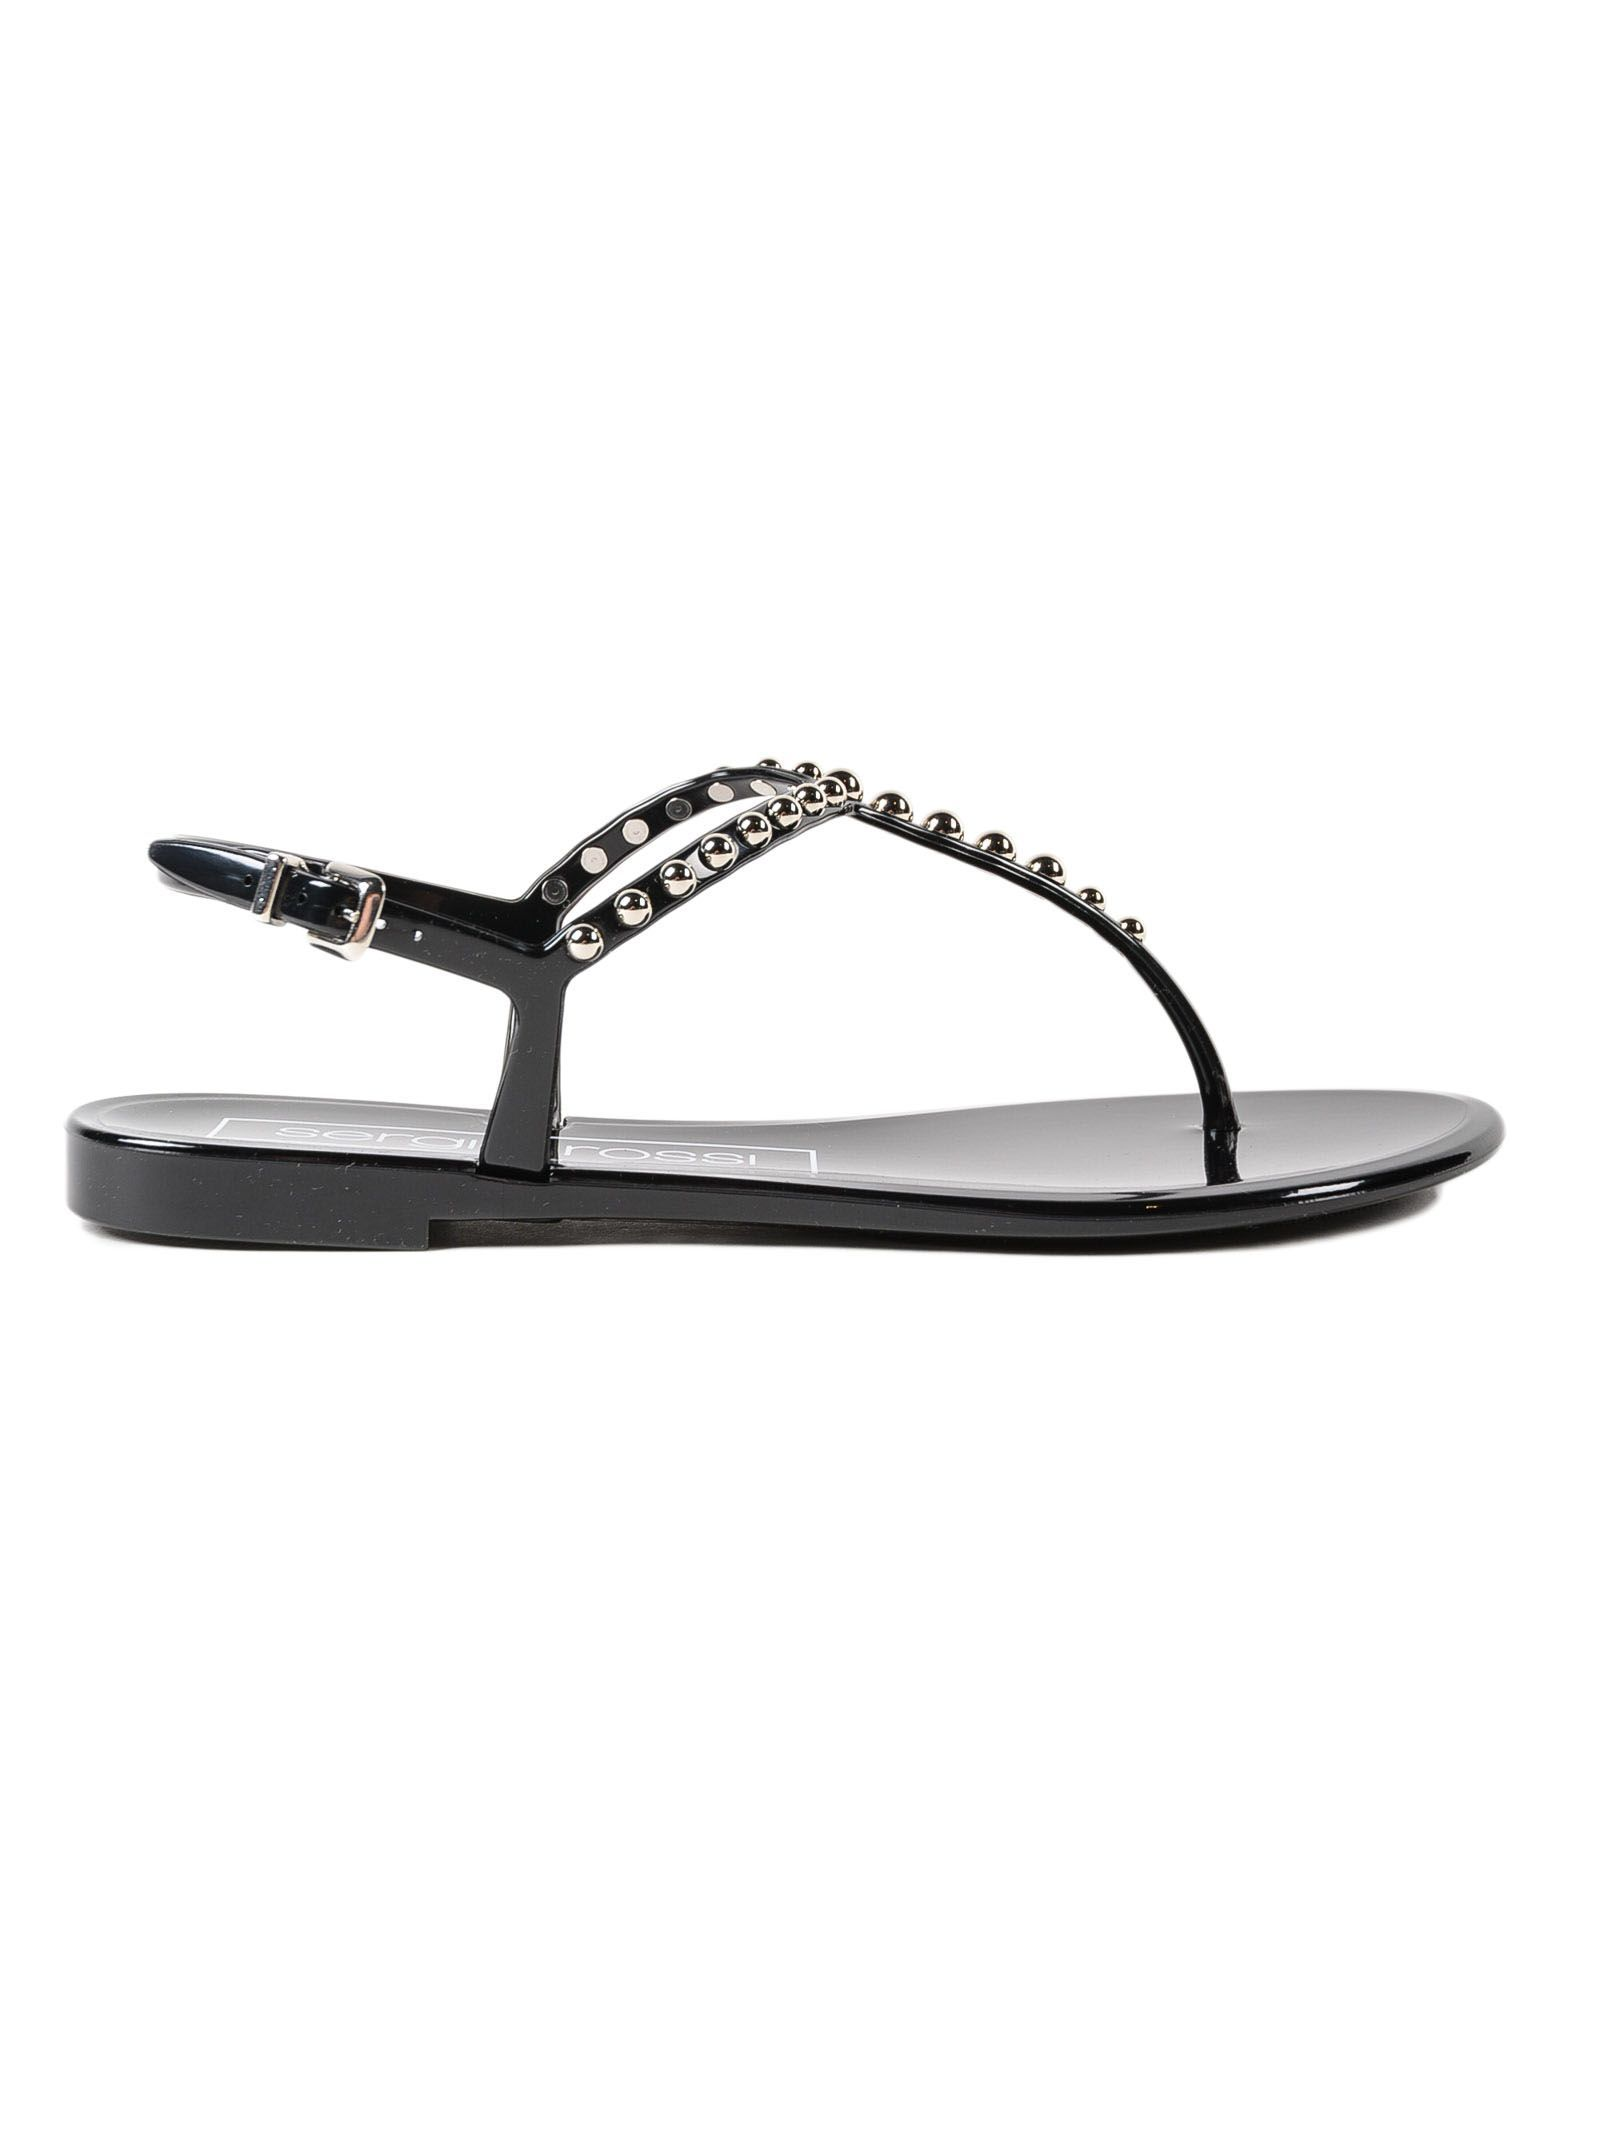 Outlet Release Dates Recommend Sergio Rossi Pvc+studs Flat Sandal Sale Low Price Outlet Nicekicks 1N48yMndKI